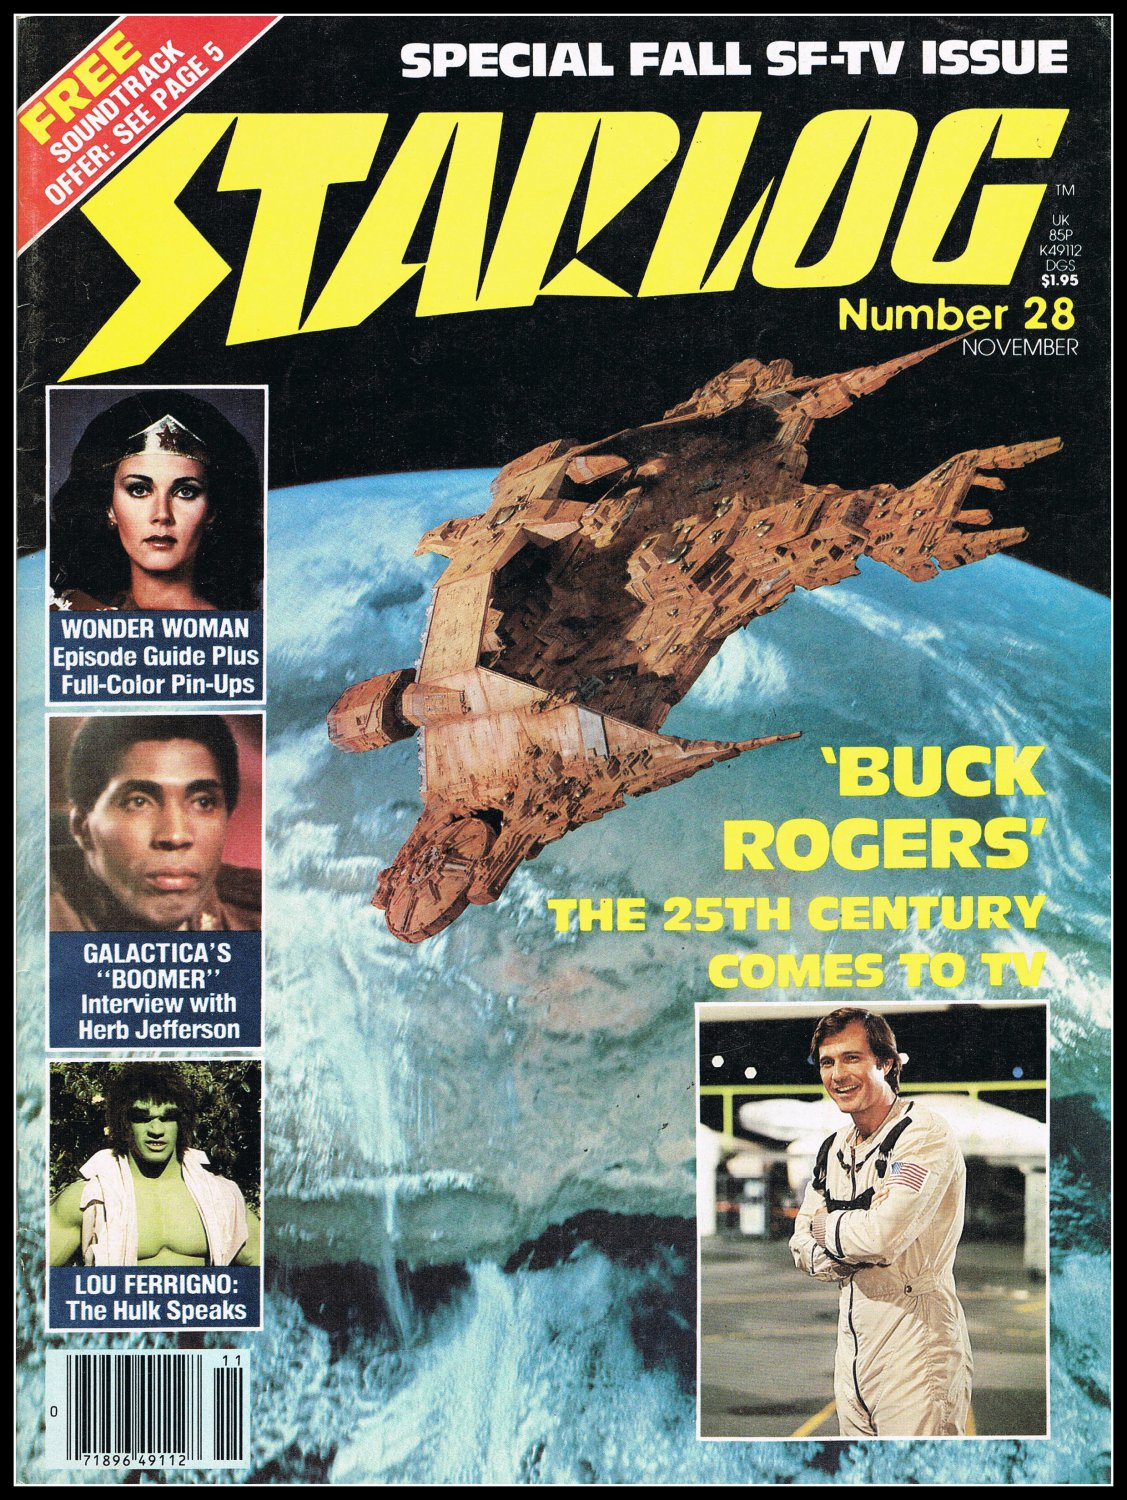 1979 Starlog Magazine #28 Special Fall SF-TV Issue Wonder Woman